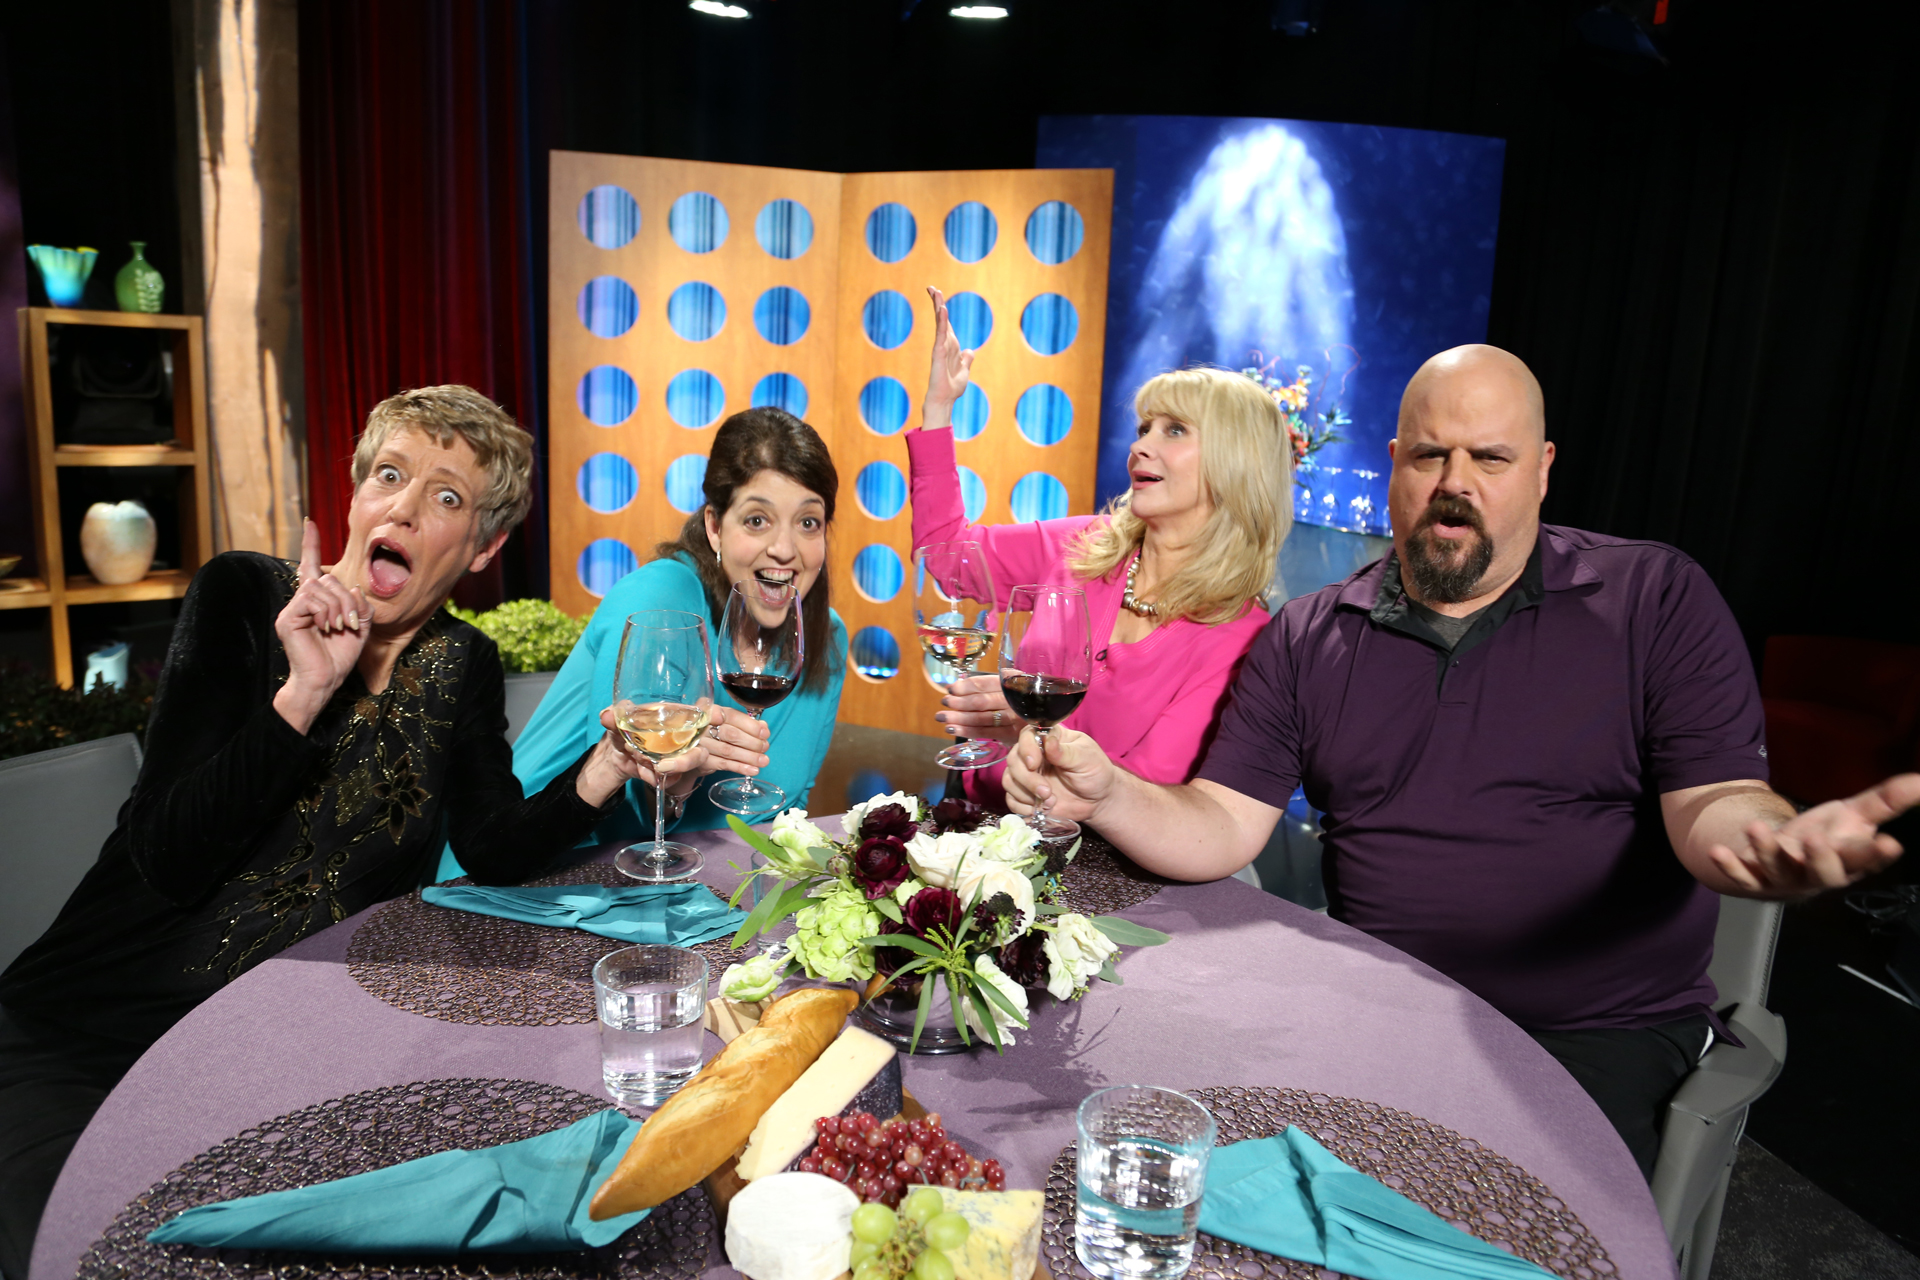 Host Leslie Sbrocco and guests having fun on the set of the premiere episode of season 12.